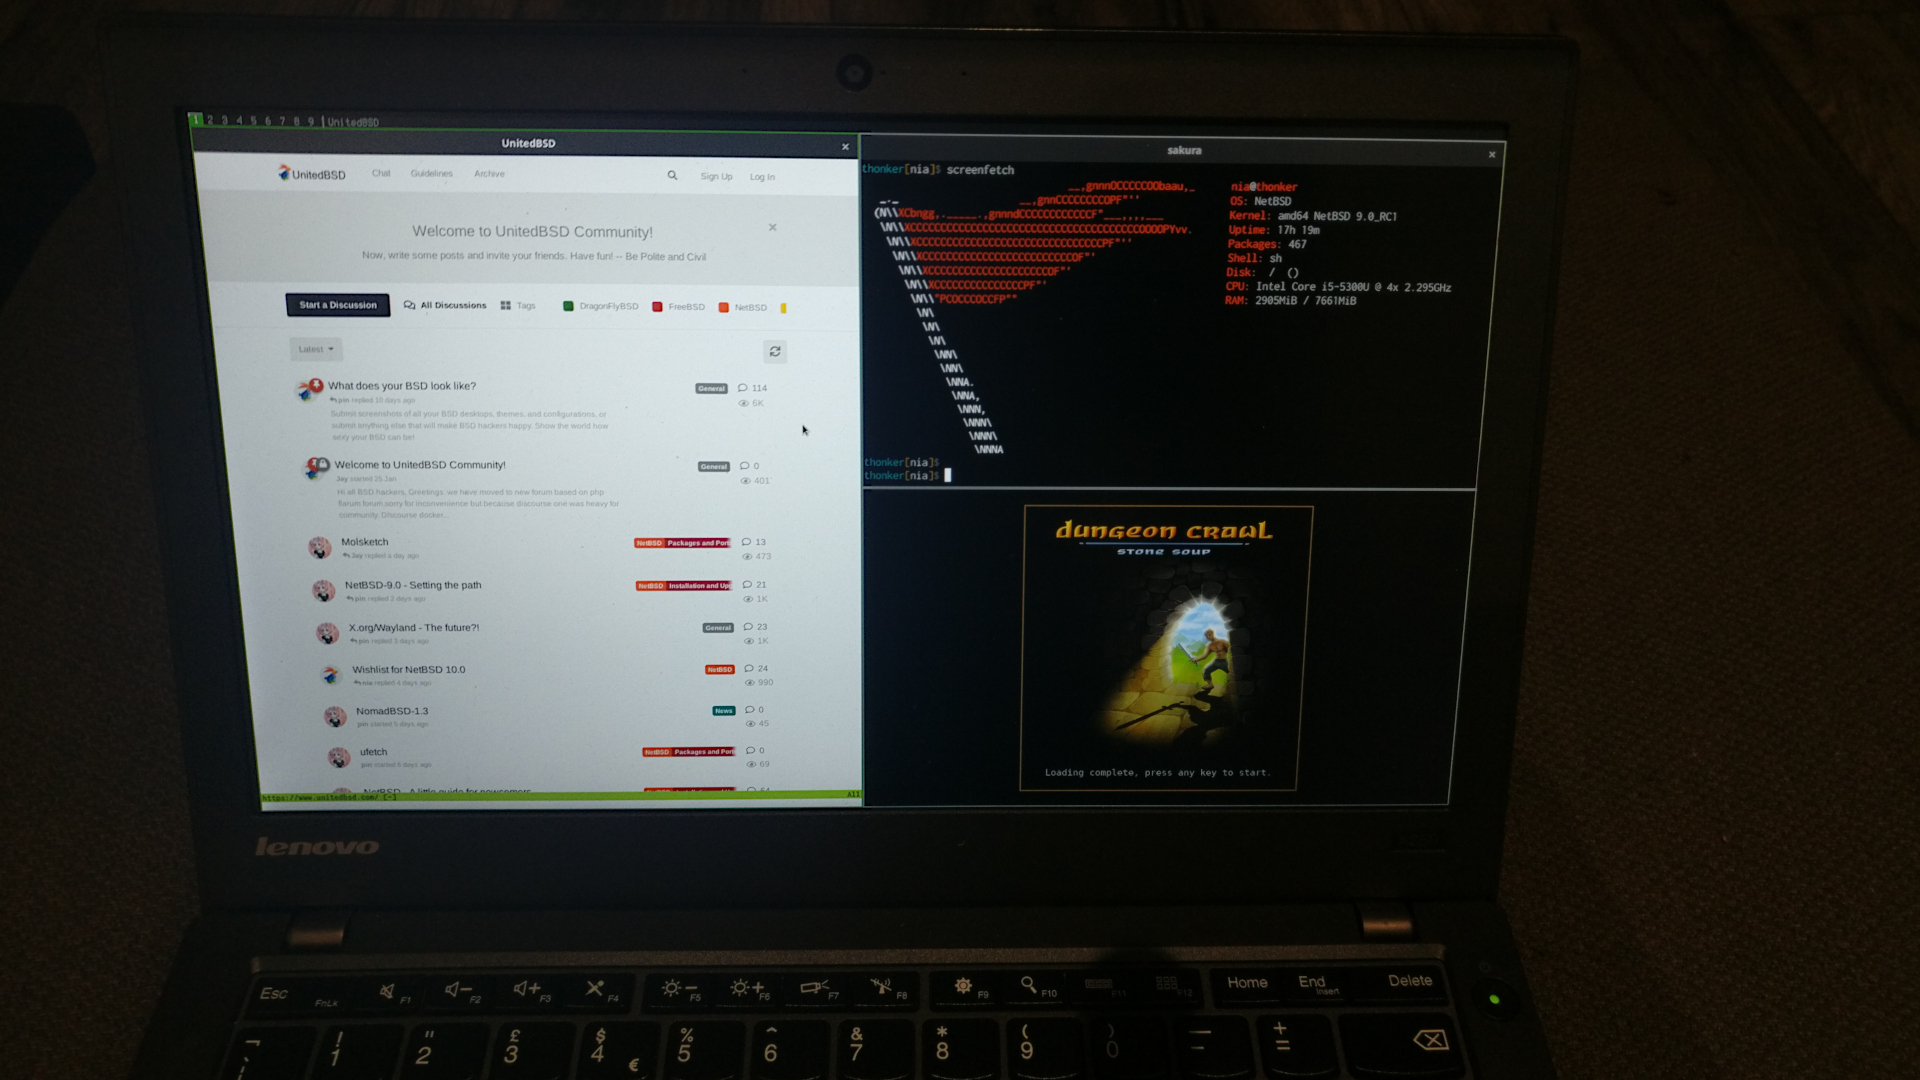 A Wayland compositor running on my NetBSD laptop, with a few applications like Luakit and Dungeon Crawl Stone Soup open.